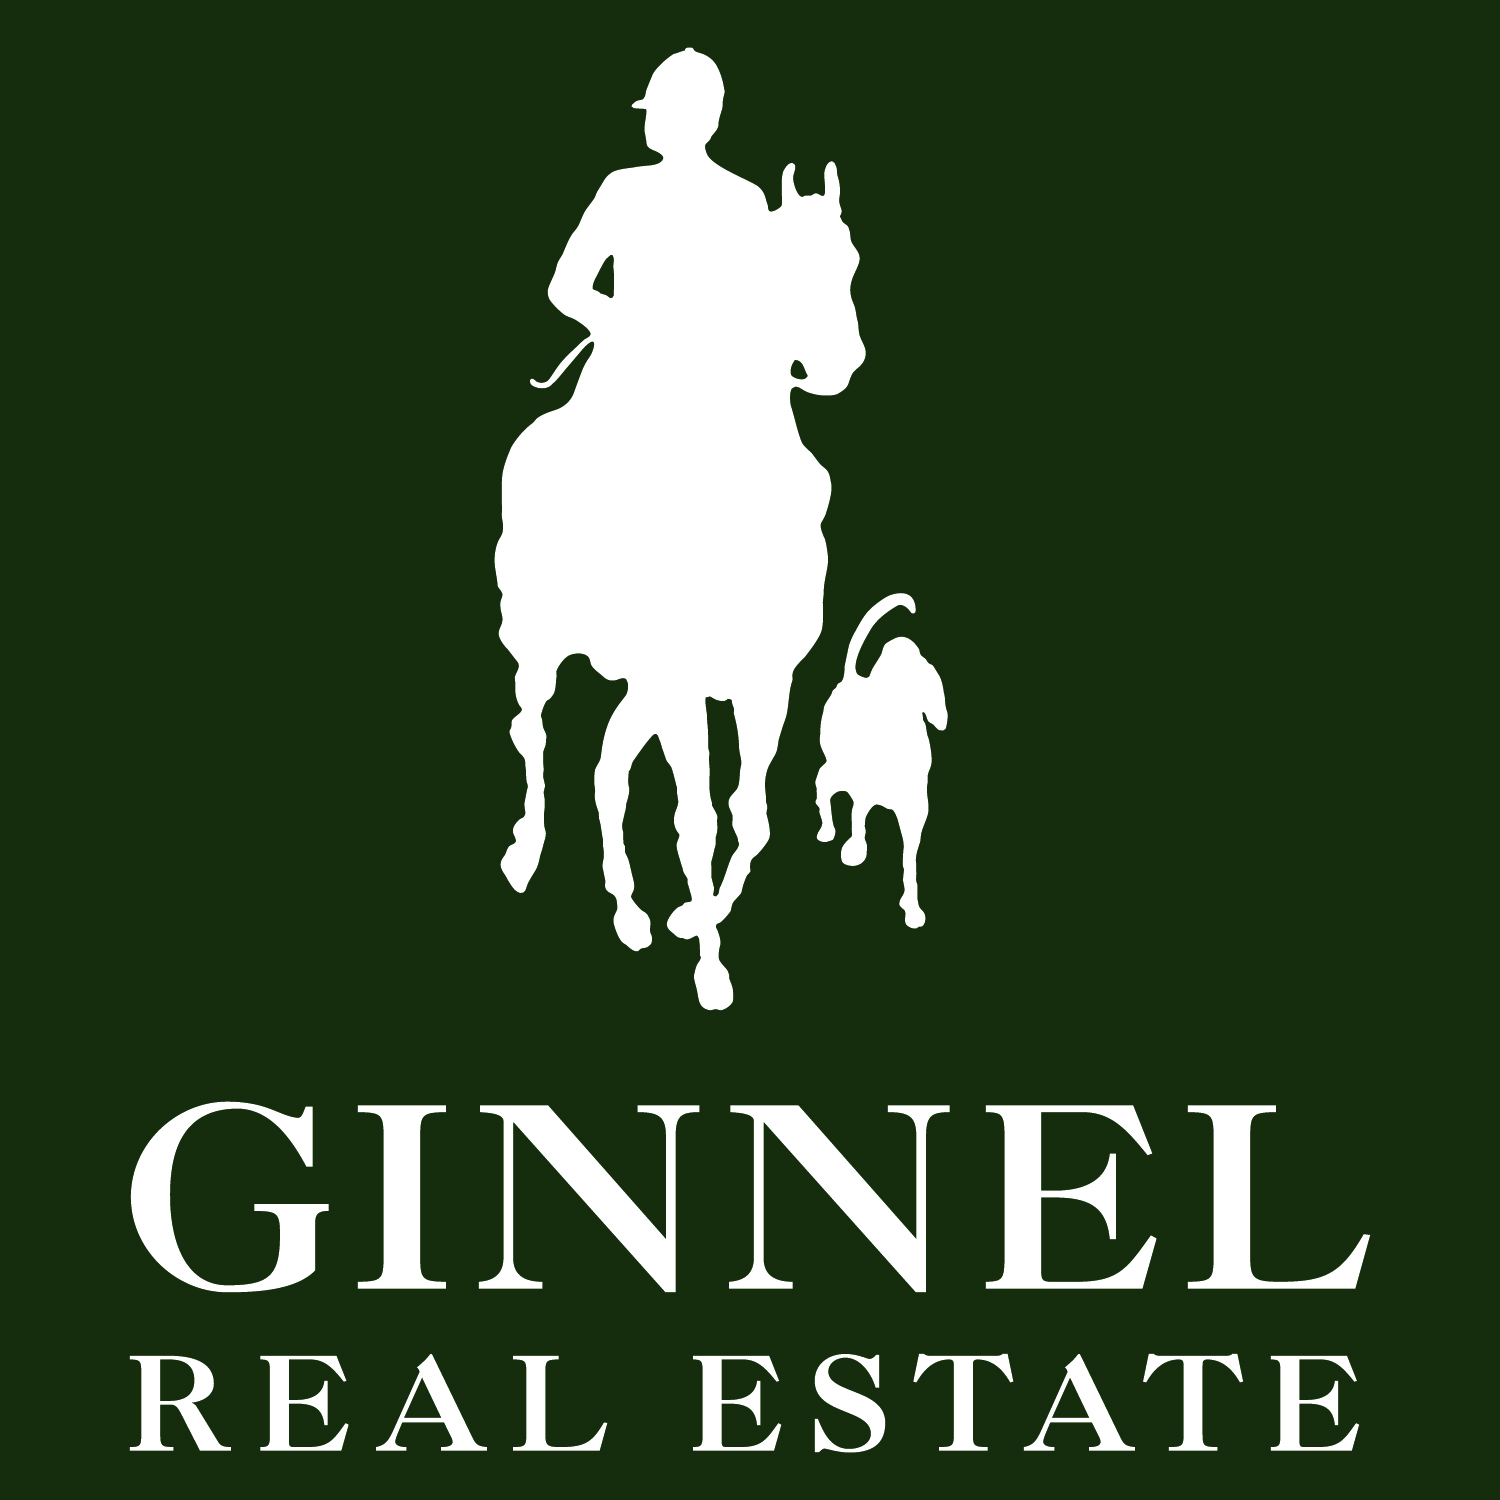 GINNEL_logo_lockup_green.jpg